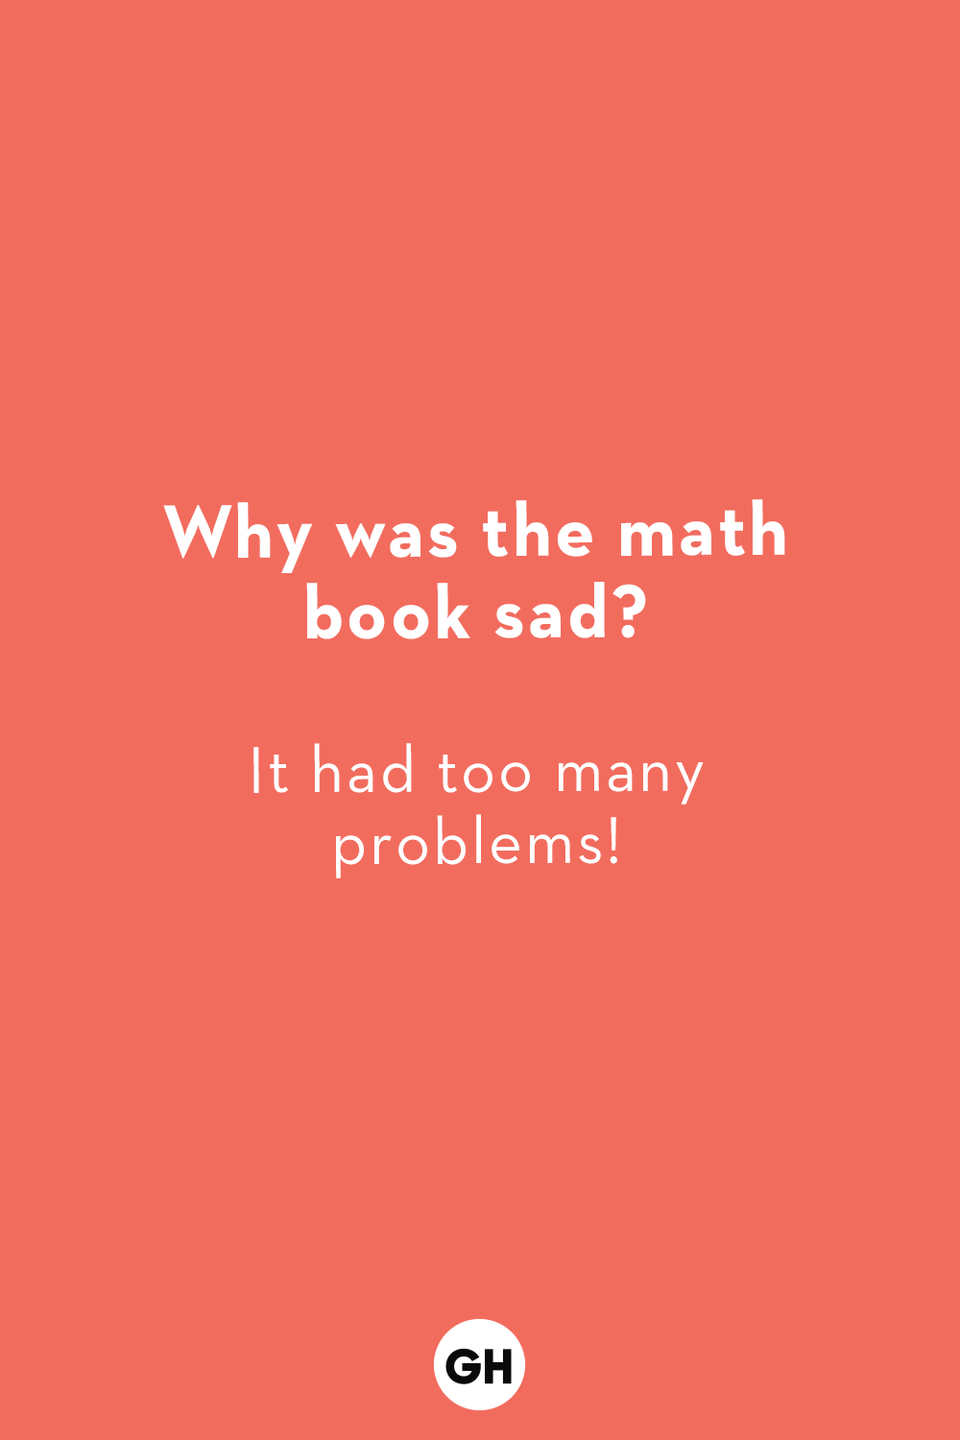 <p>It had too many problems!</p>